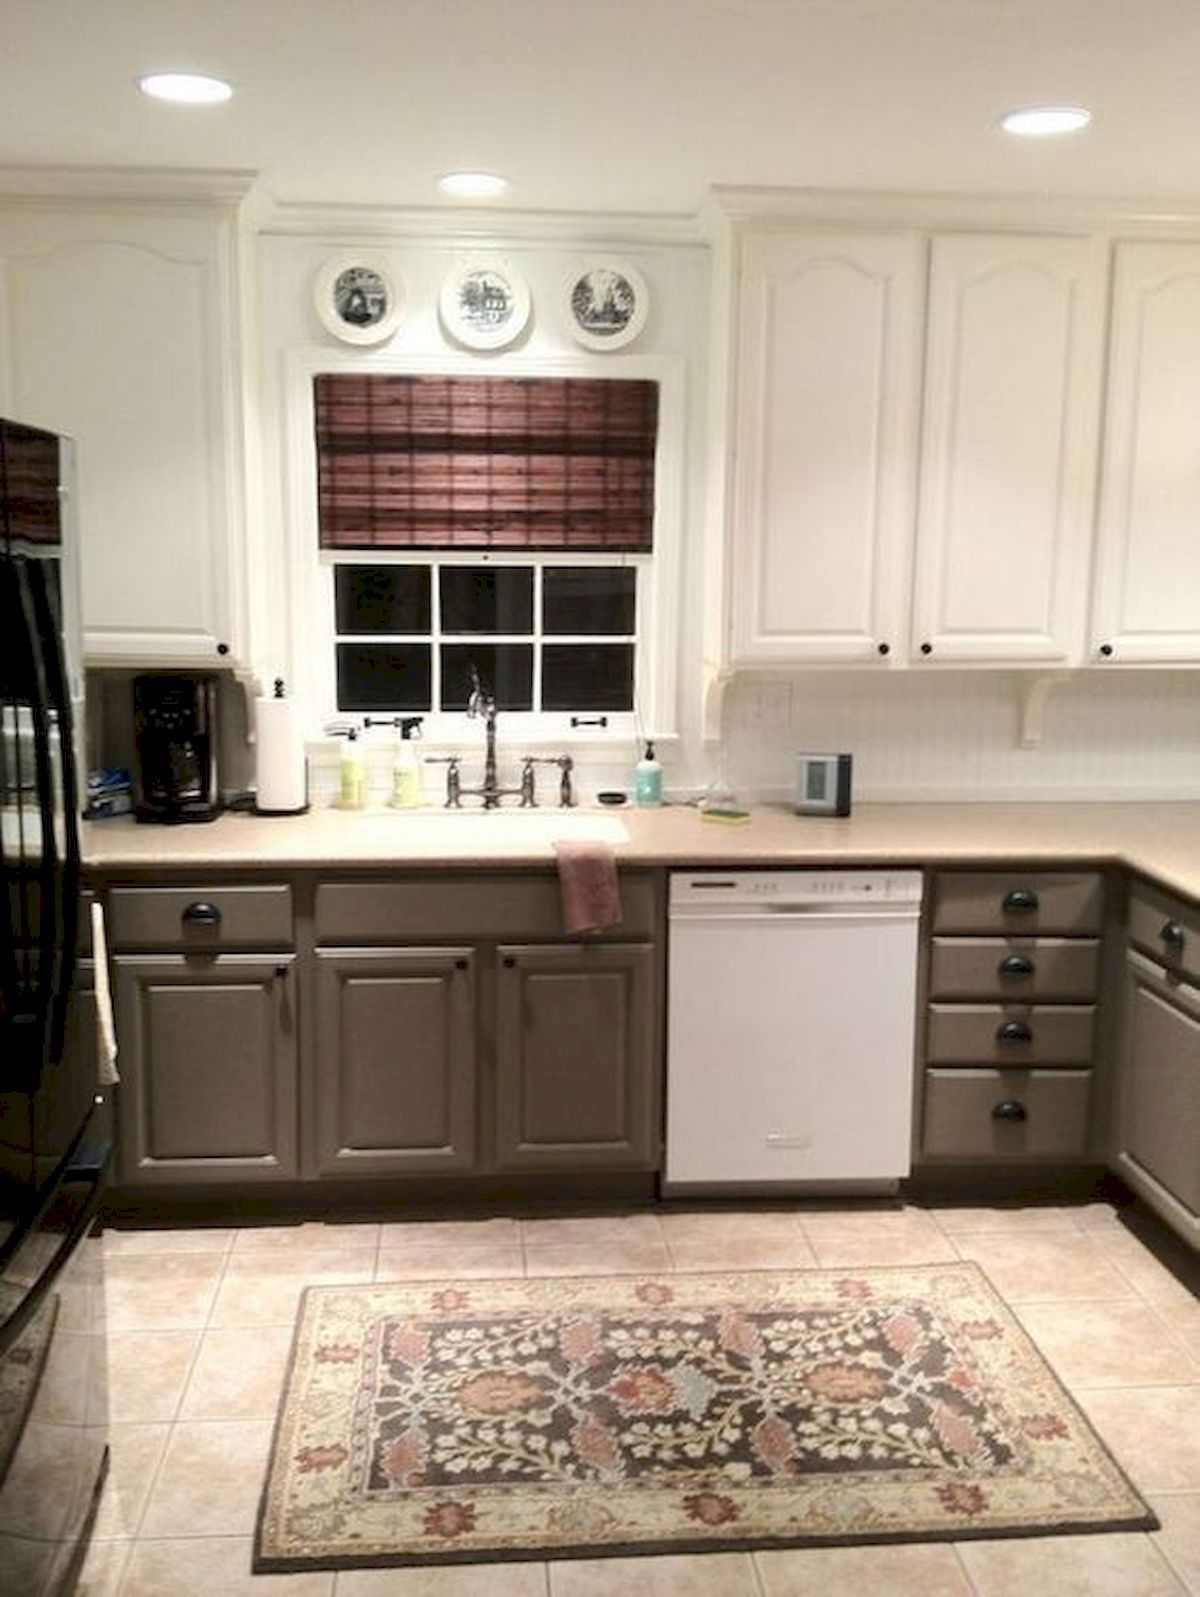 Pin by Csaba Villo on Two tone kitchen cabinets | Budget ...